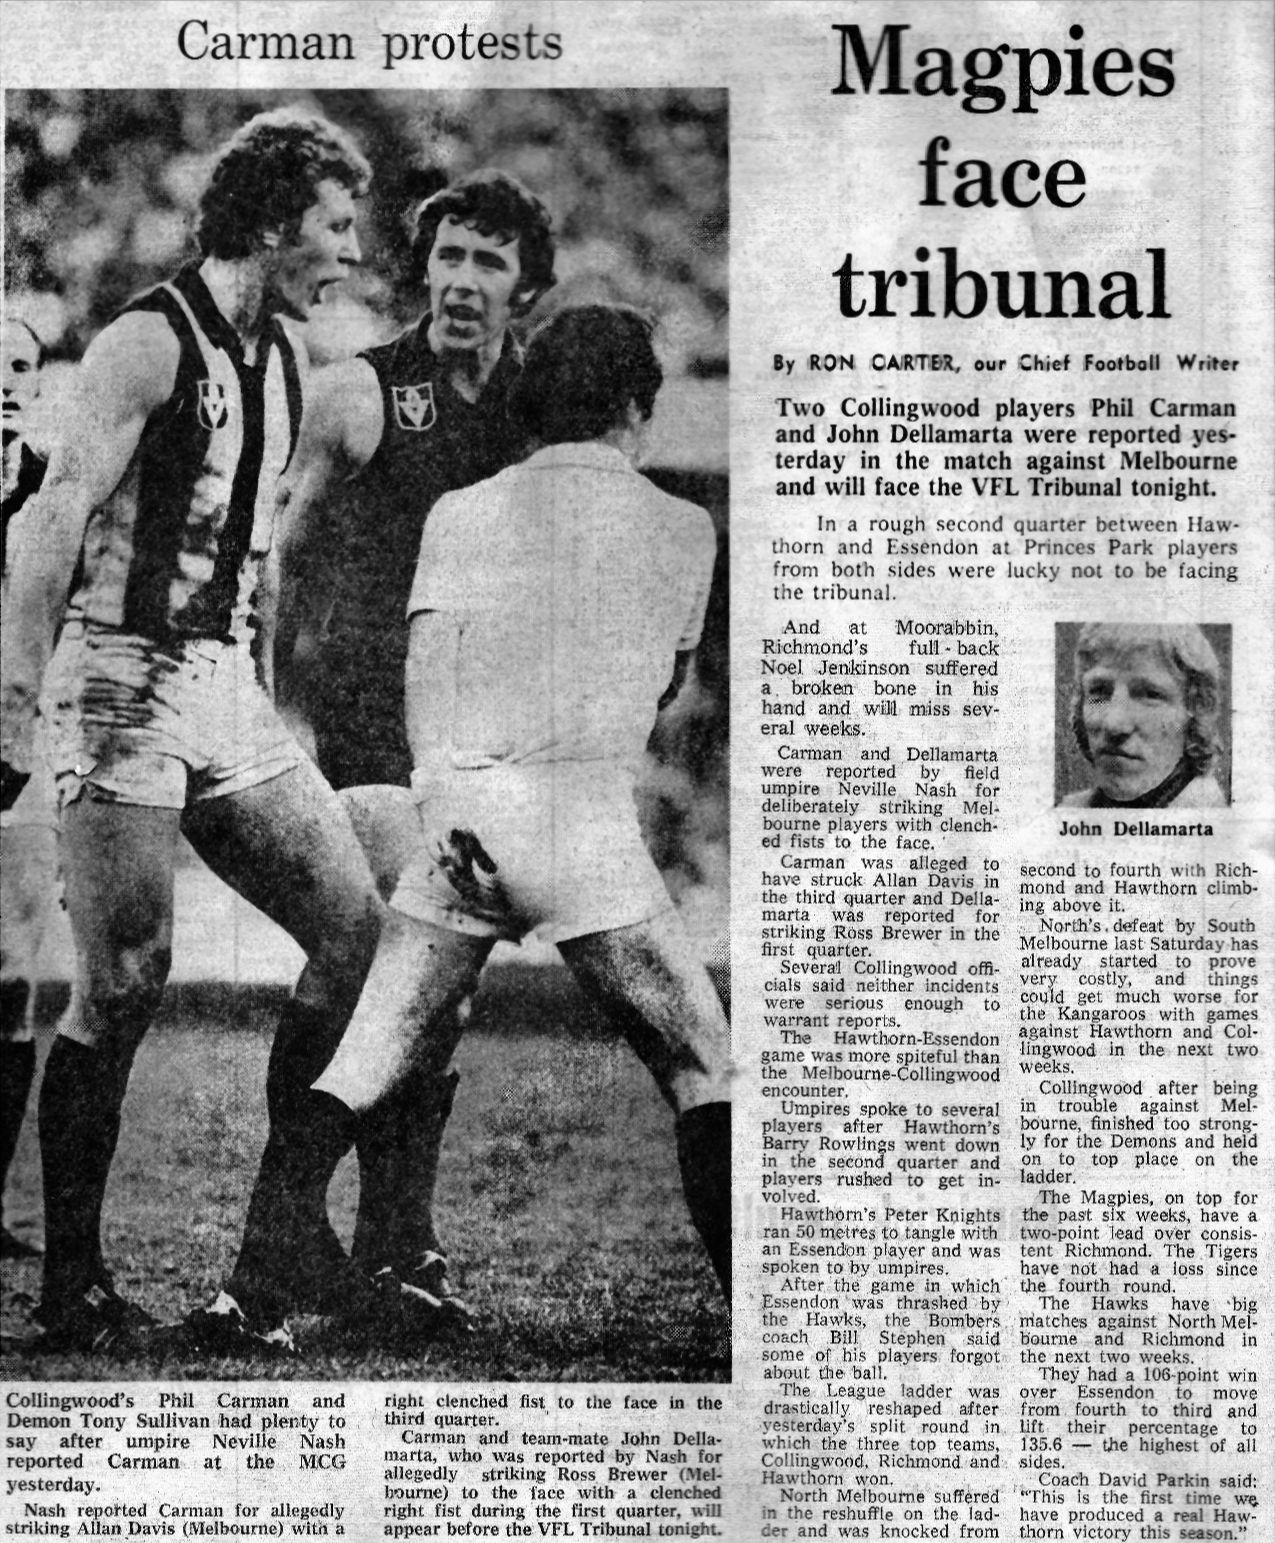 Celebrity Humanist Wedding: Footy Wrap - Scrapbook Article 1977 Collingwood.